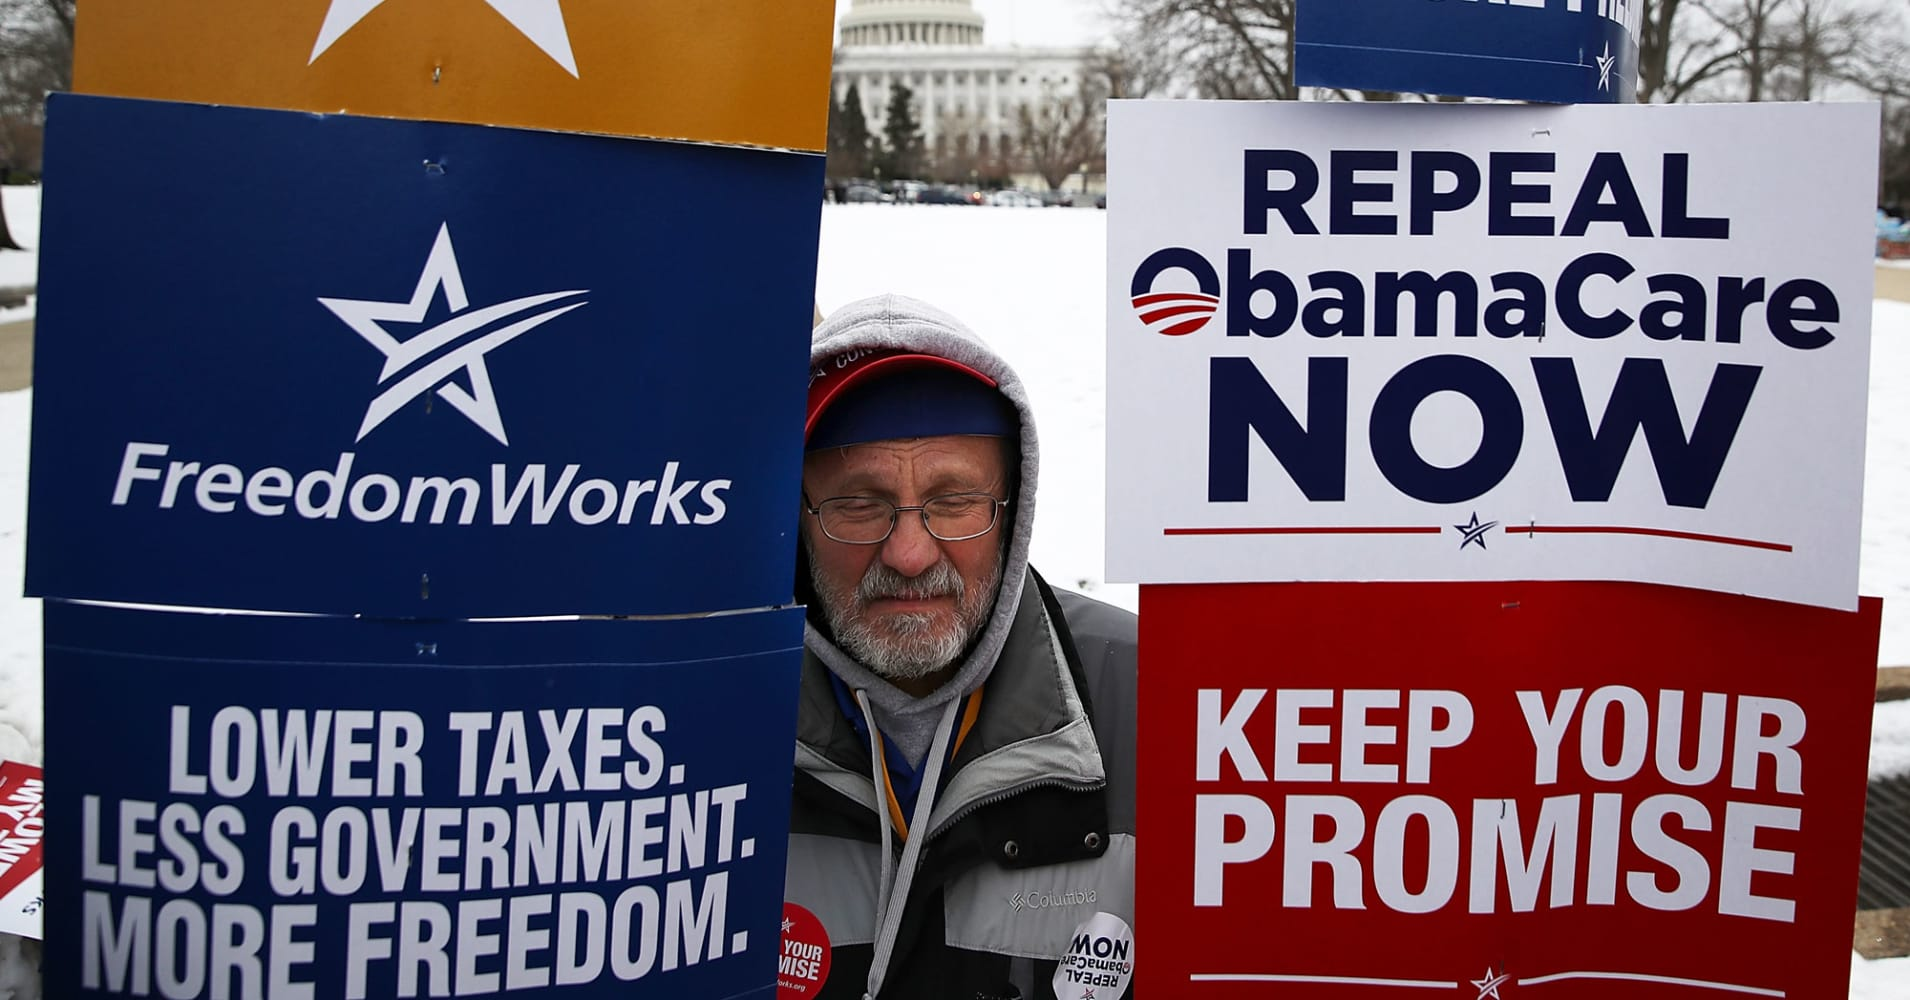 A protester holds signs during a Freedom Works rally against the proposed GOP health care plan at Upper Senate Park across from the U.S. Capitol on March 15, 2017 in Washington, DC.